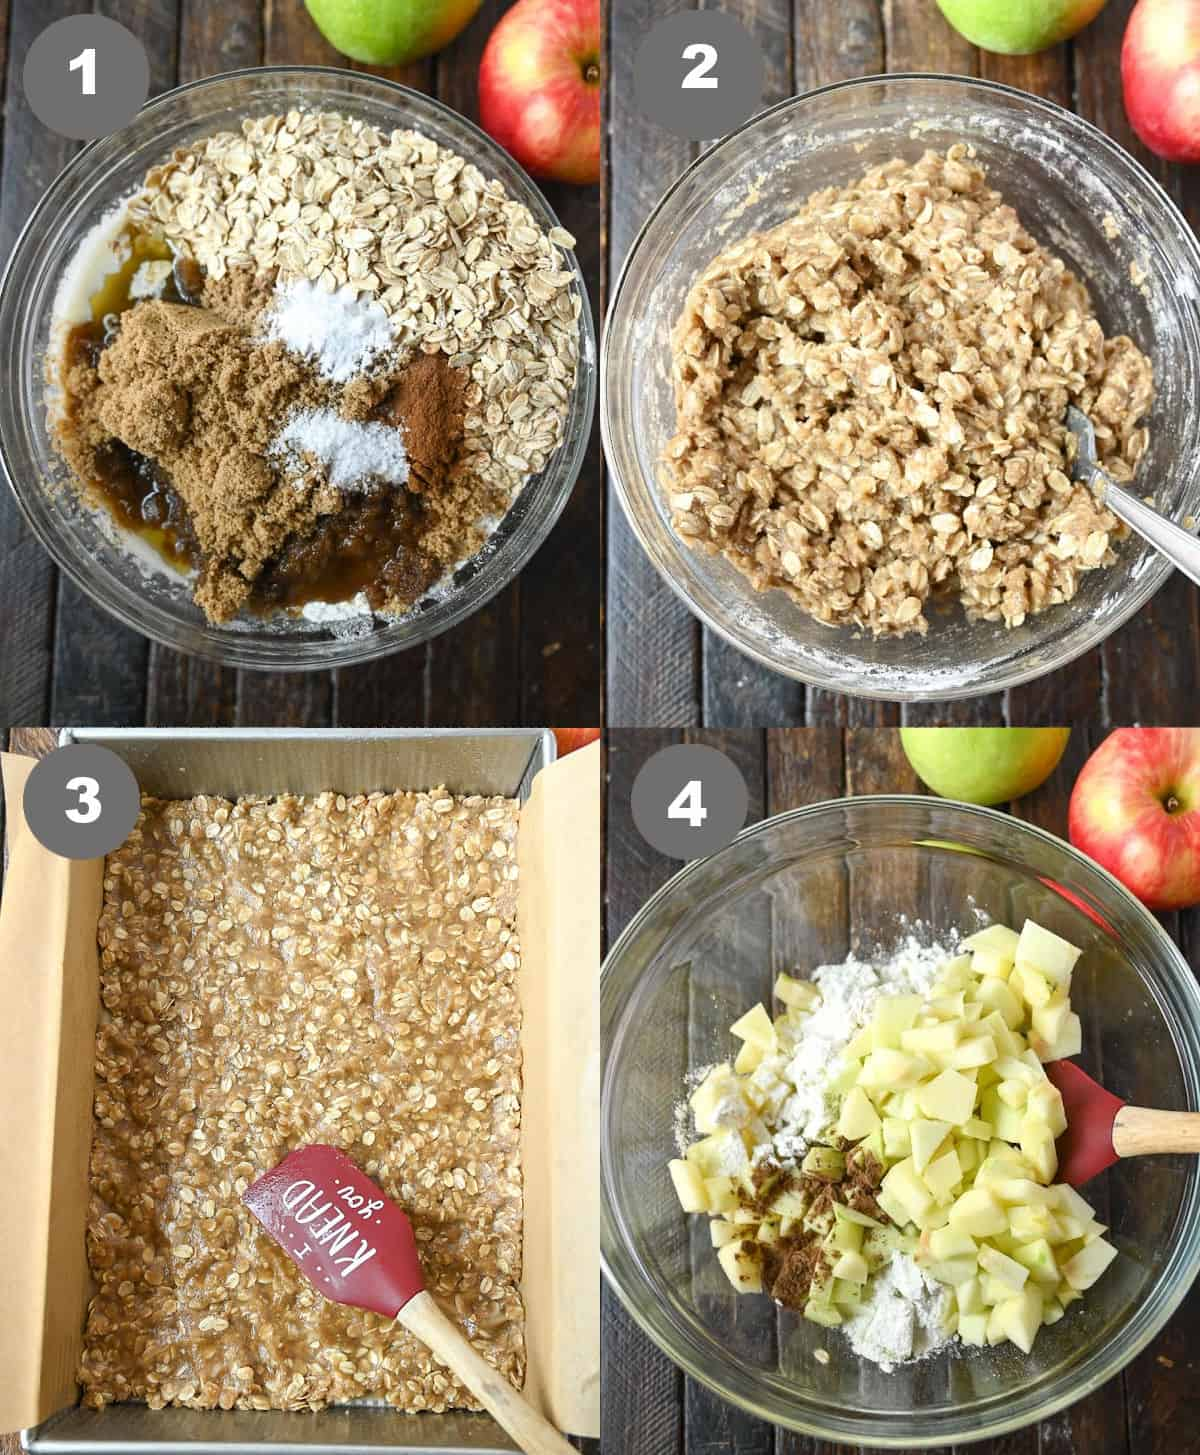 Four process photos. First one, all the dry ingredients for the crust and topping in a bowl. Second crust batter all mixed up. Third one,batter pressed into the bottom of a metal baking pan. Fourth one, apple mixture in a bowl.